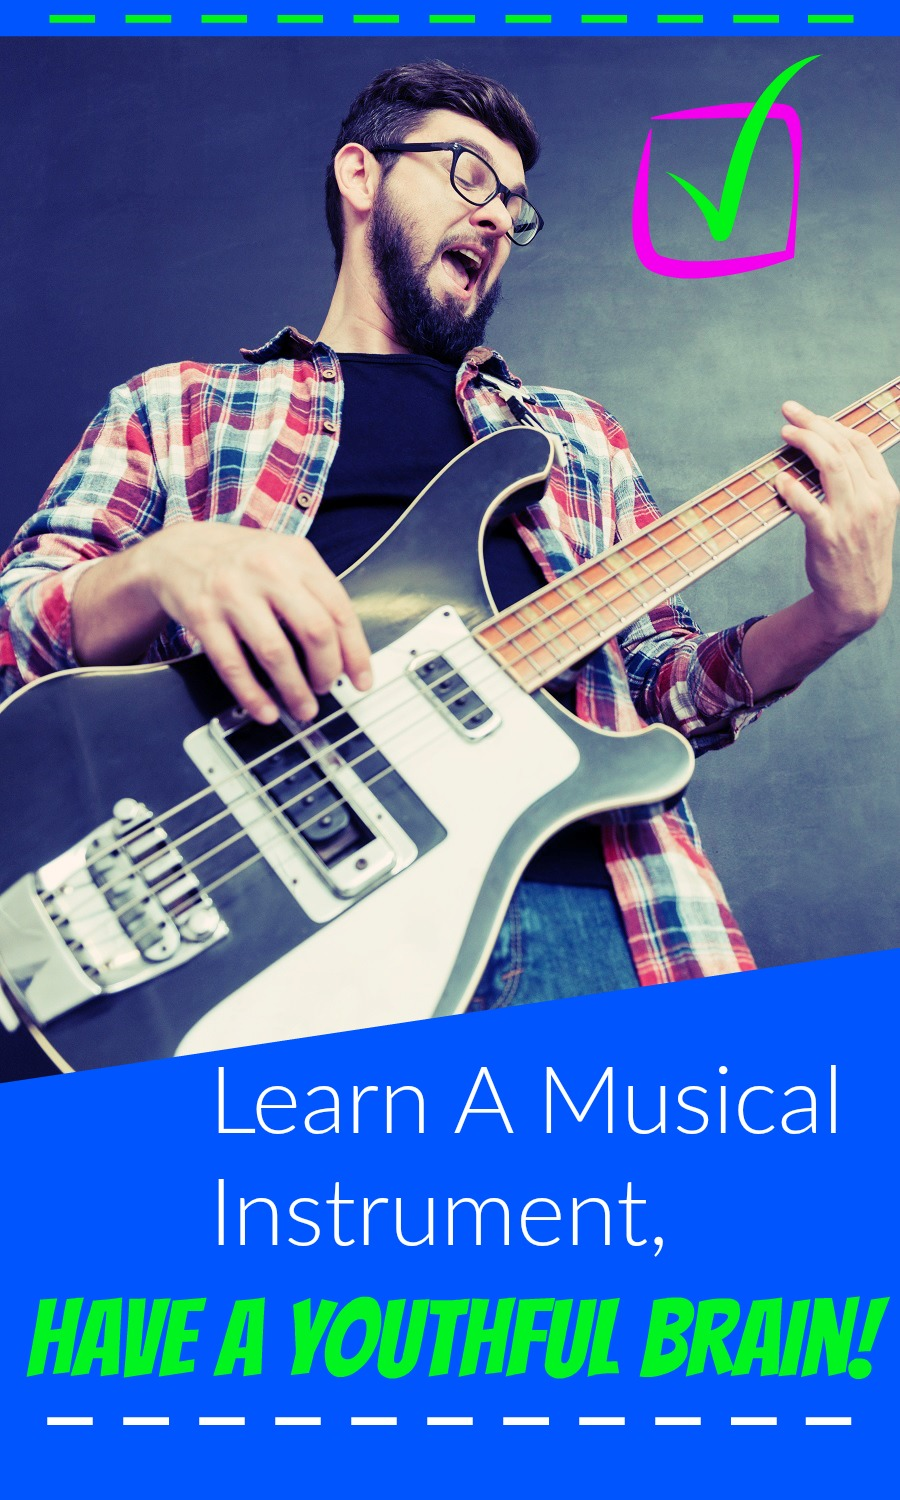 Learn A Musical Instrument, Have A Youthful Brain